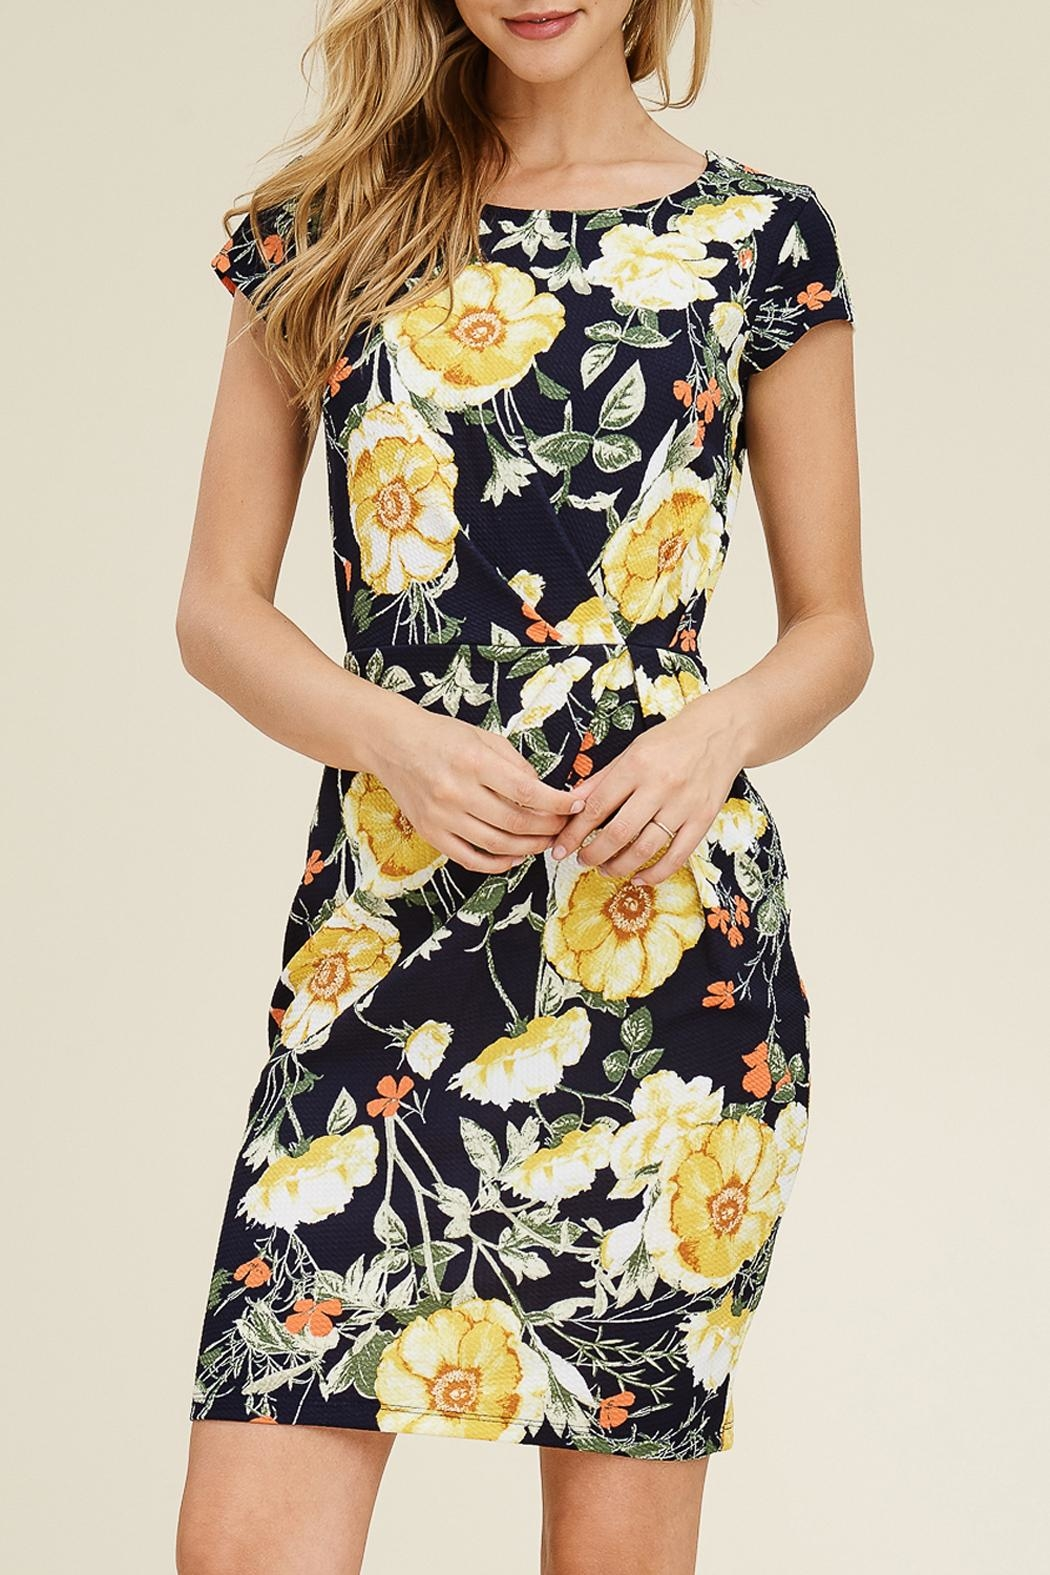 Riah Fashion Floral Cap-Sleeve Dress - Front Full Image